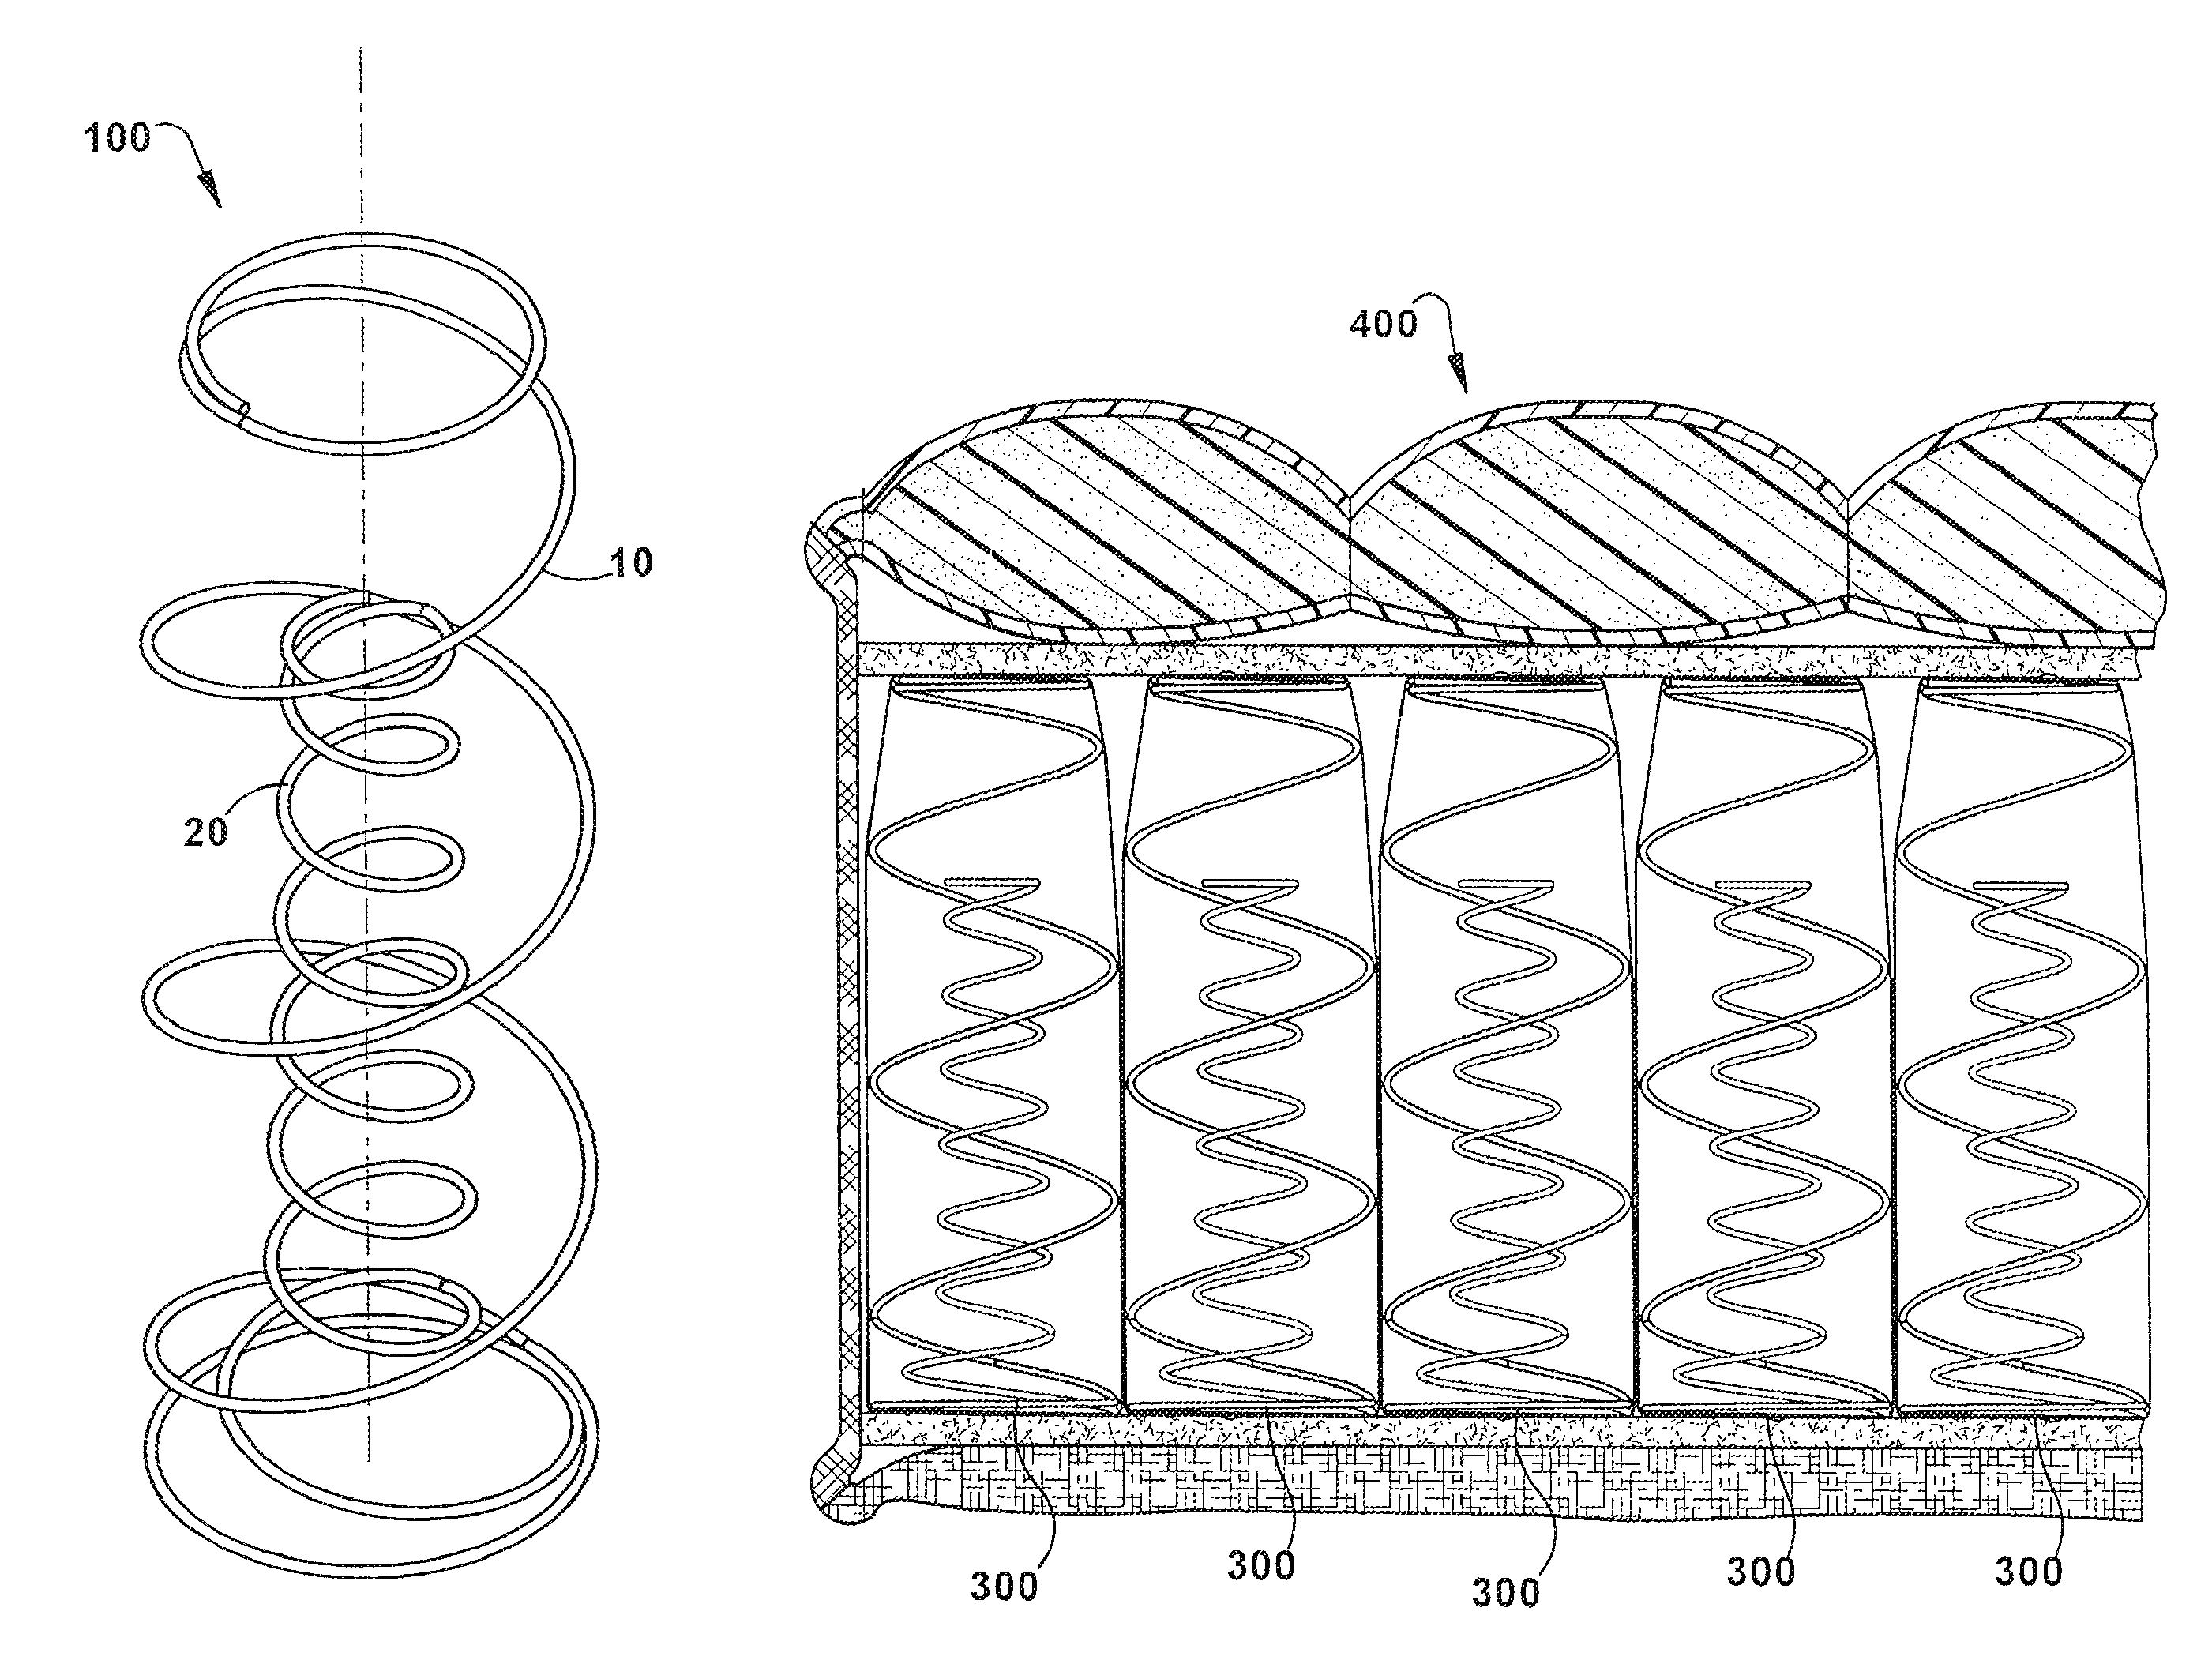 Sealy coil-in-coil patent drawing